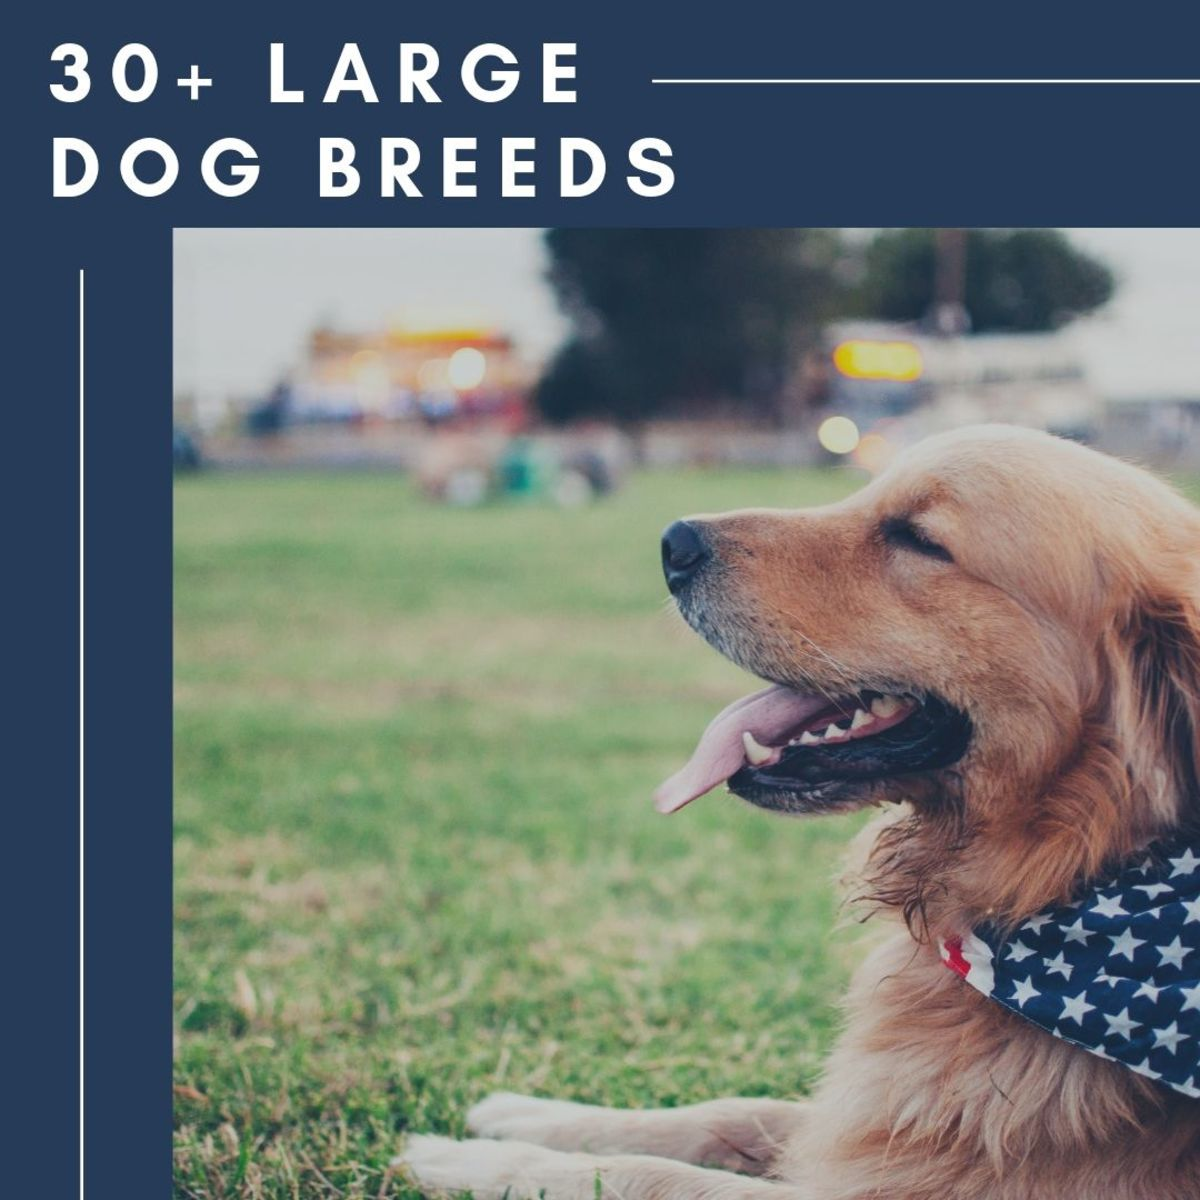 33 Most Popular Large Dog Breeds and How to Care for Them